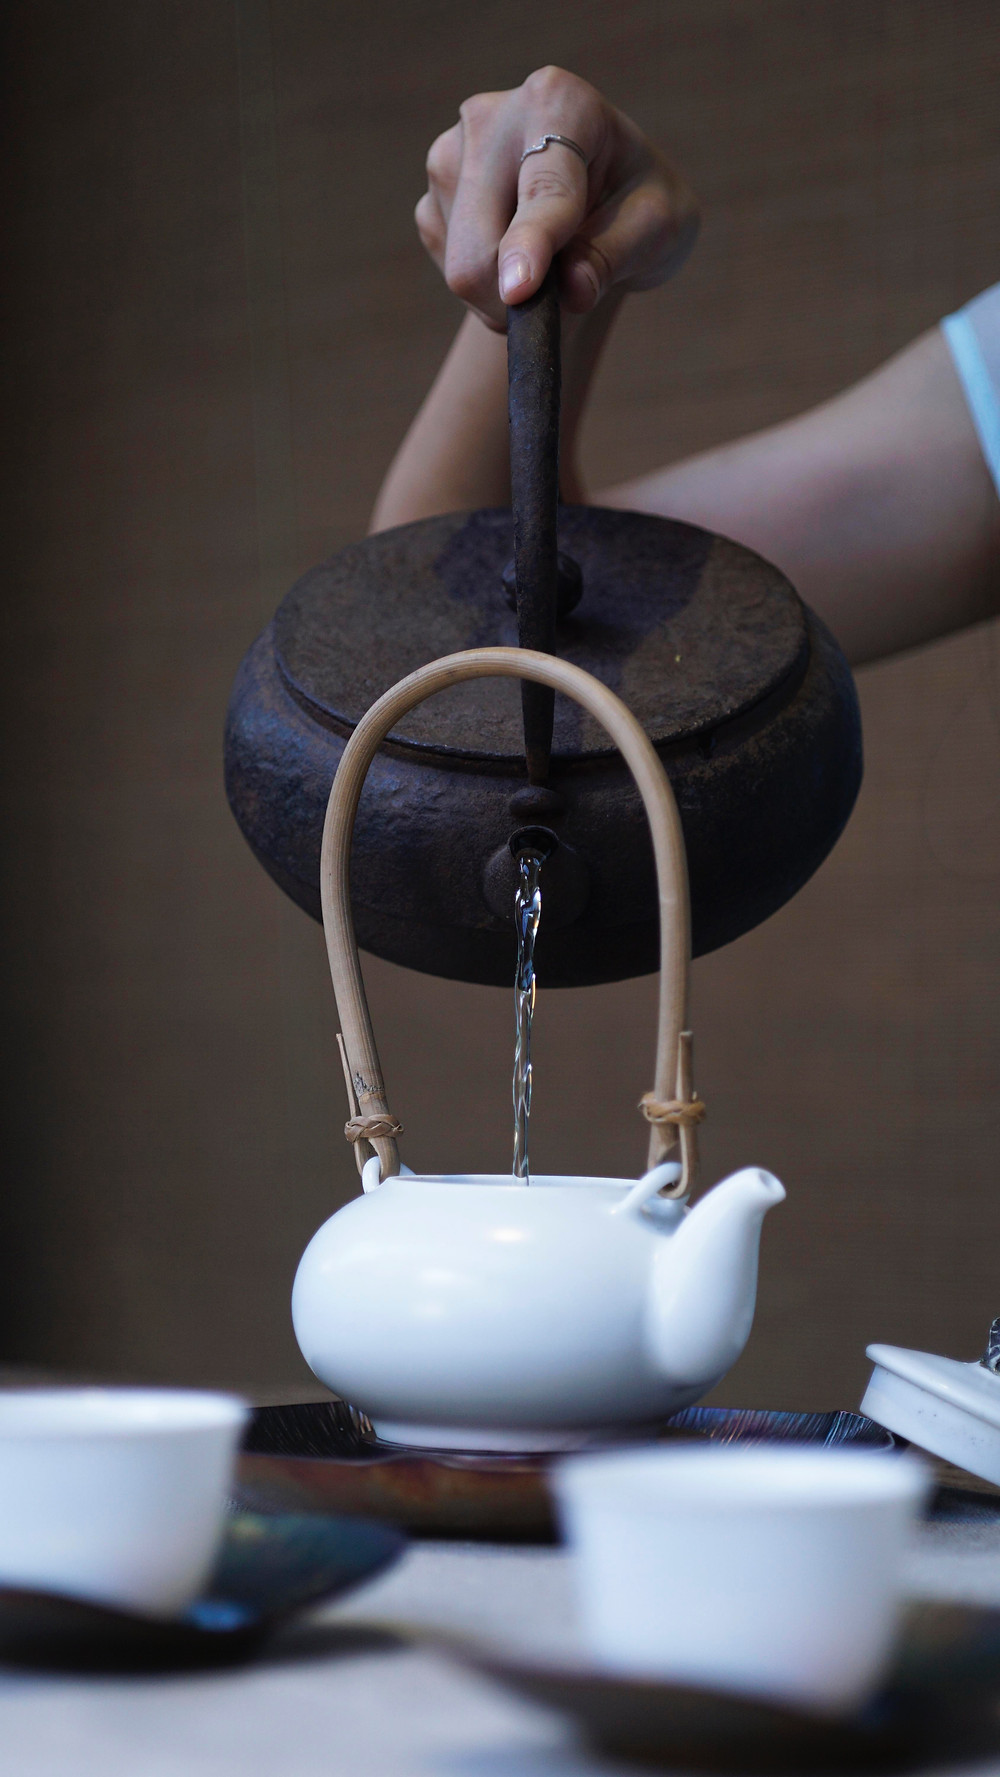 pour boiled water into the teapot